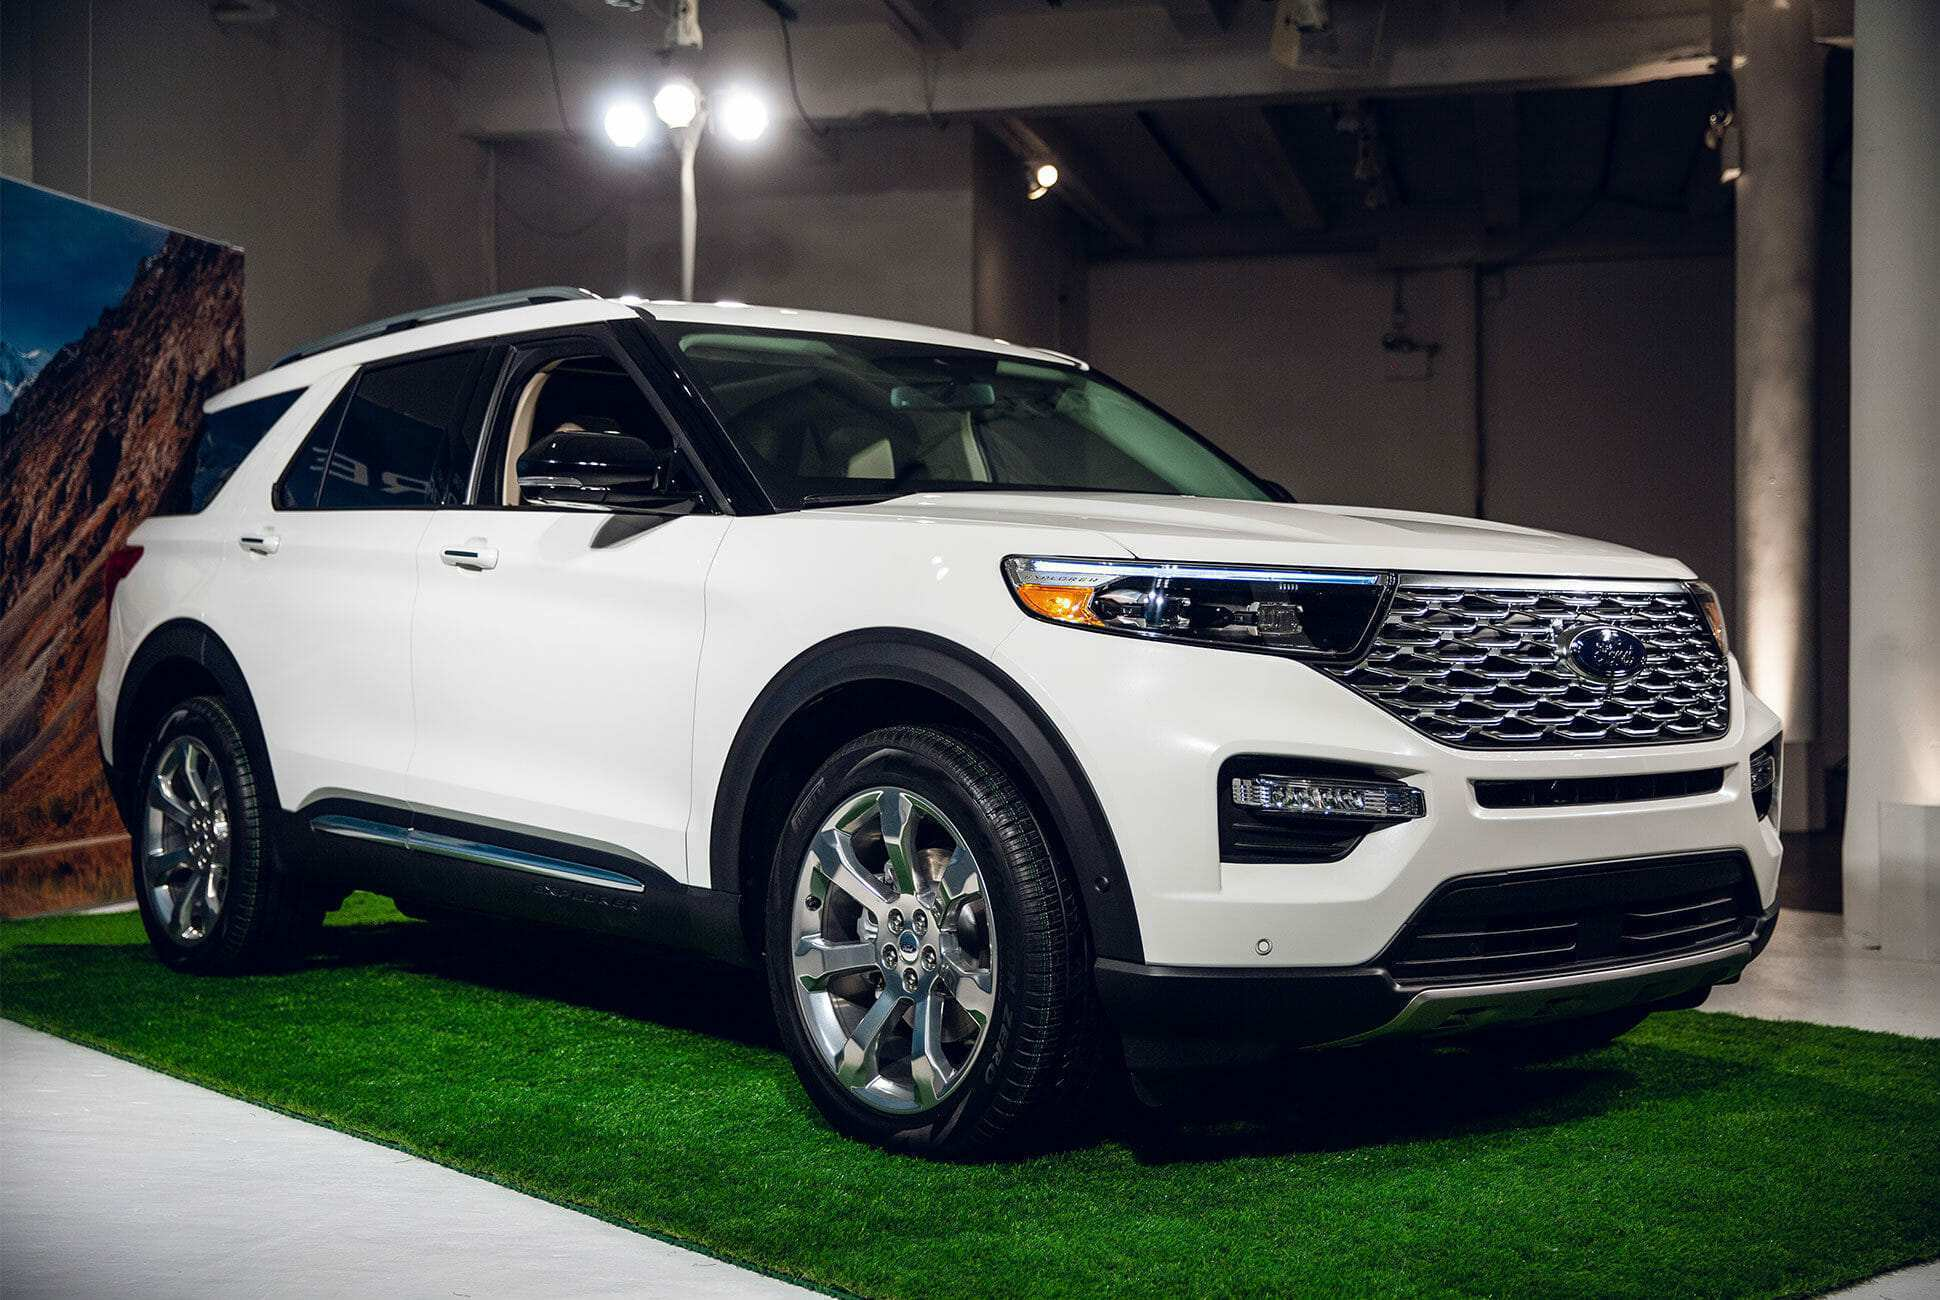 45 New 2020 Ford Explorer Overview by 2020 Ford Explorer